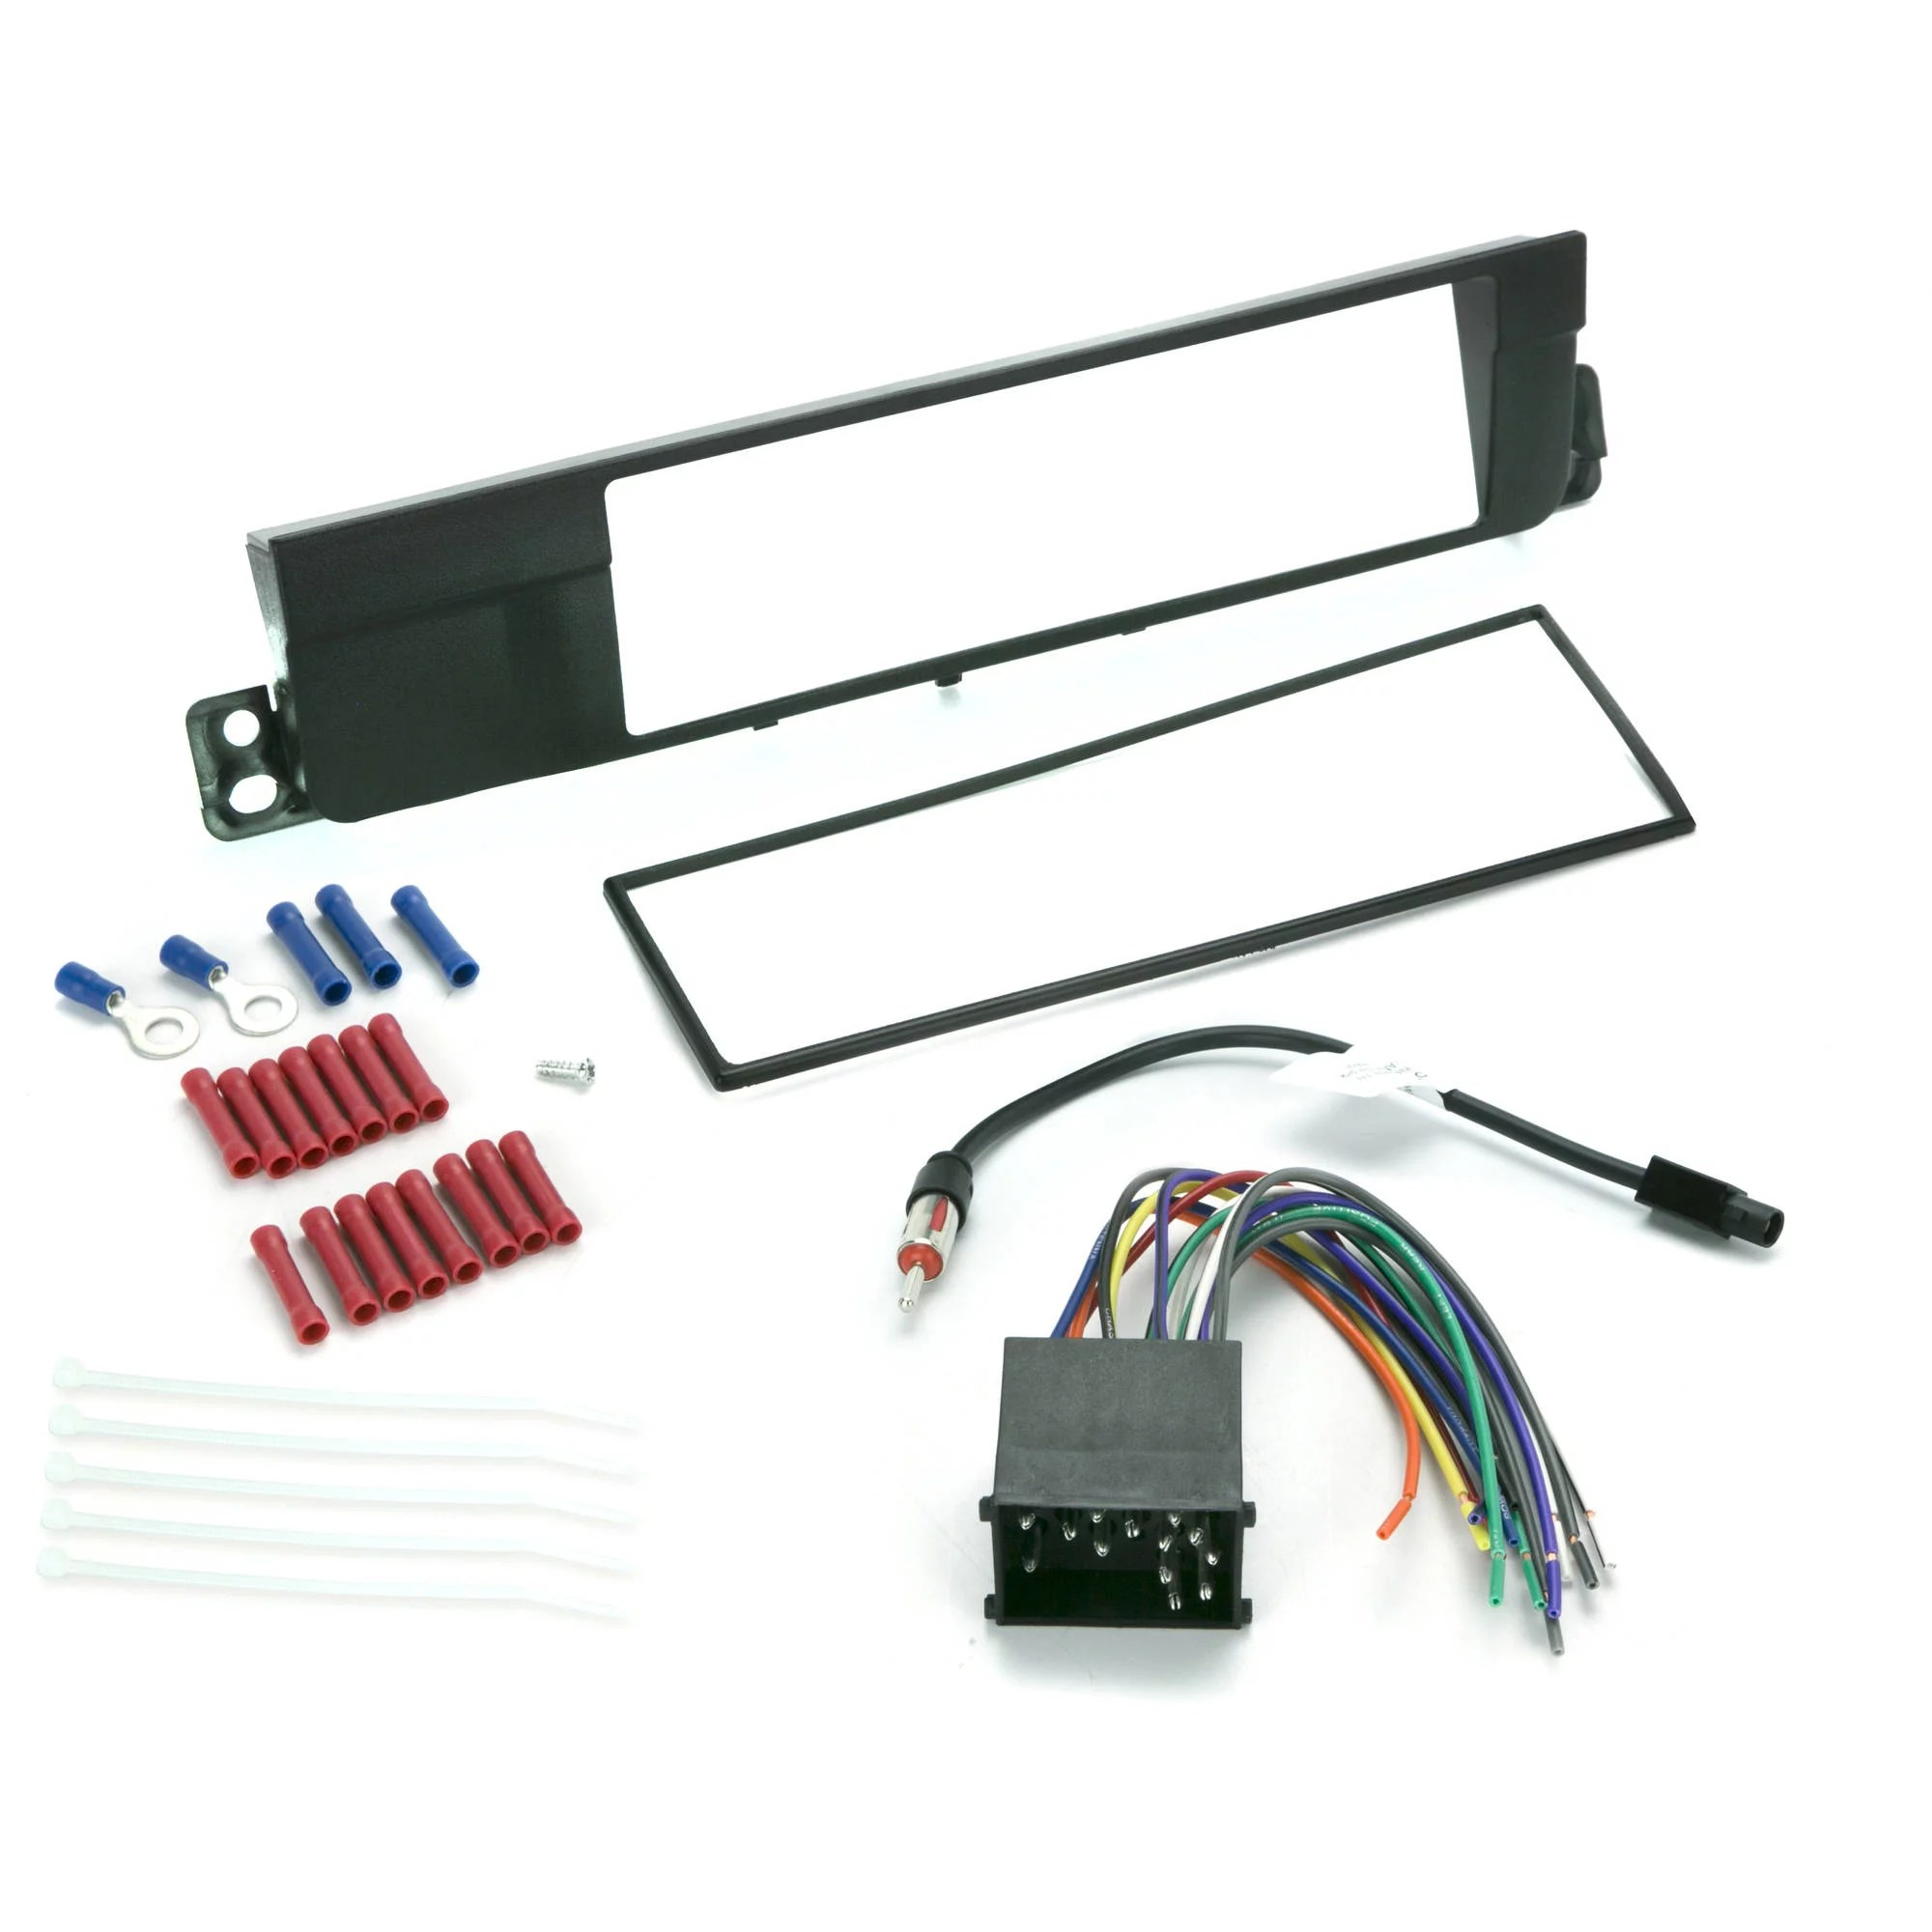 hight resolution of install centric icbw3bn bmw 3 series 2002 05 complete car stereo installation kit walmart com